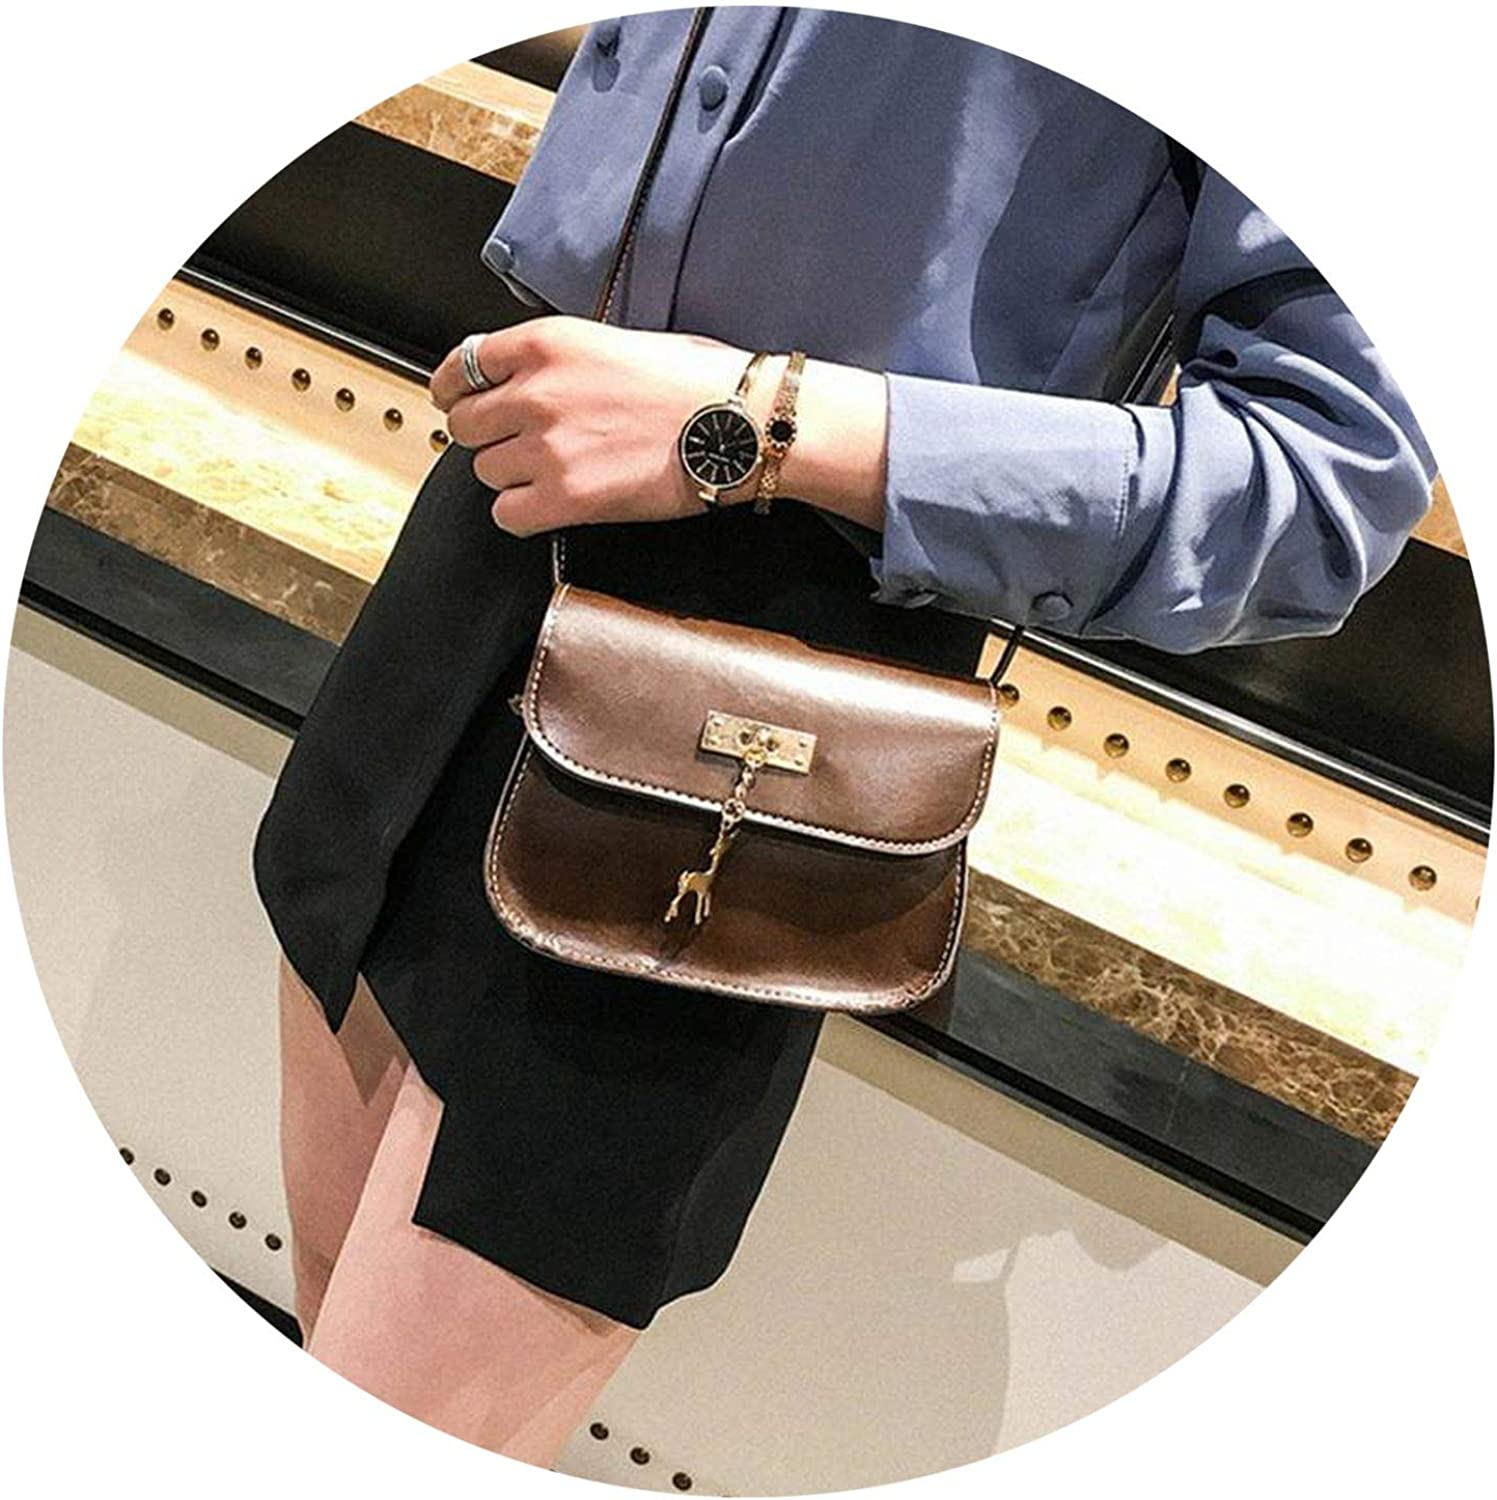 test s PU Leather Hasp Crossbody Bag small Deer Shoulder Bags Purse